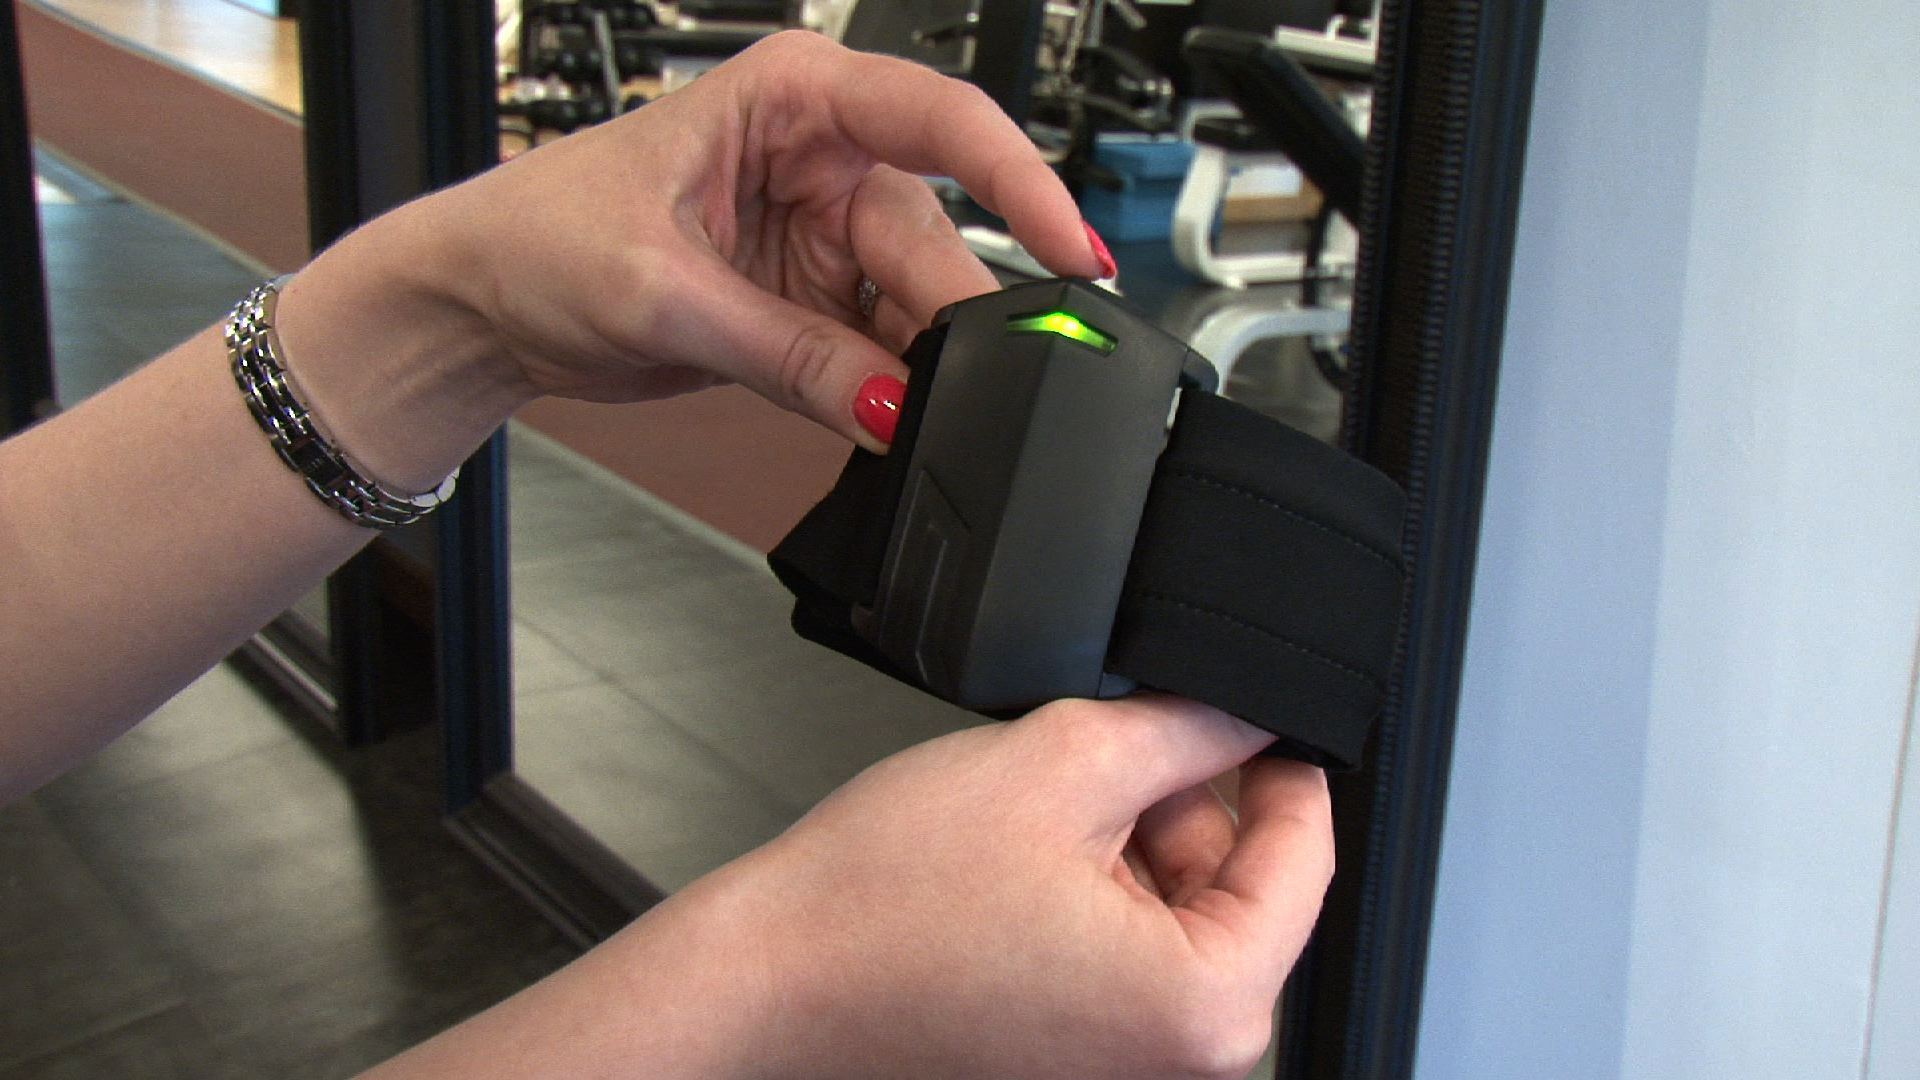 Video: Push fitness tracker puts focus on strength training